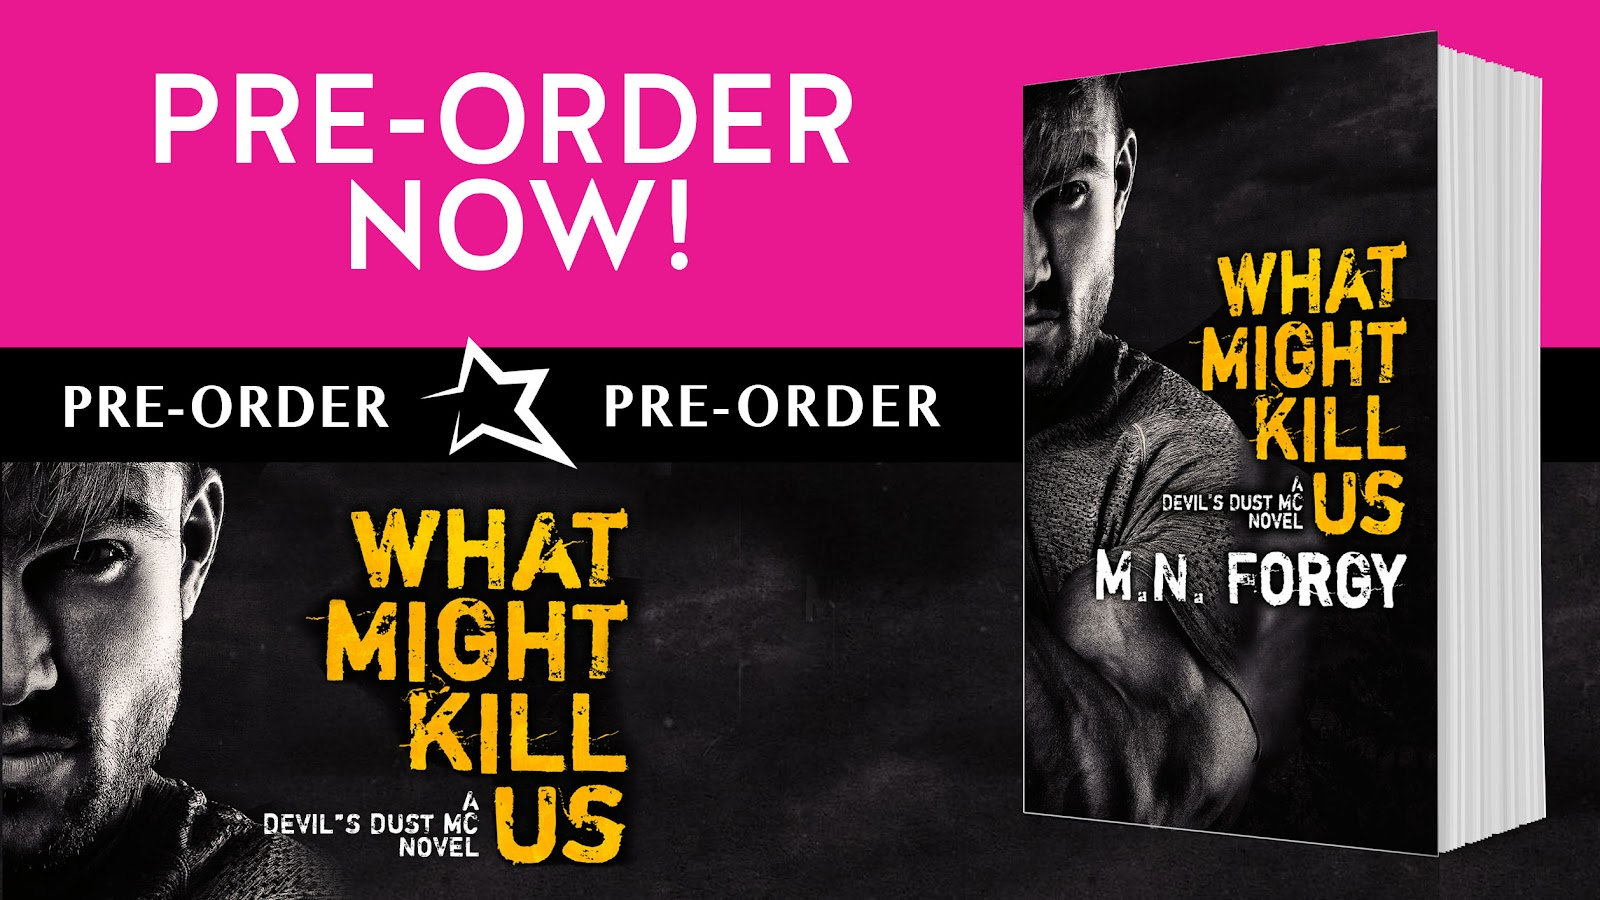 WHAT_MIGHT_KILL_US_PREORDER.jpg